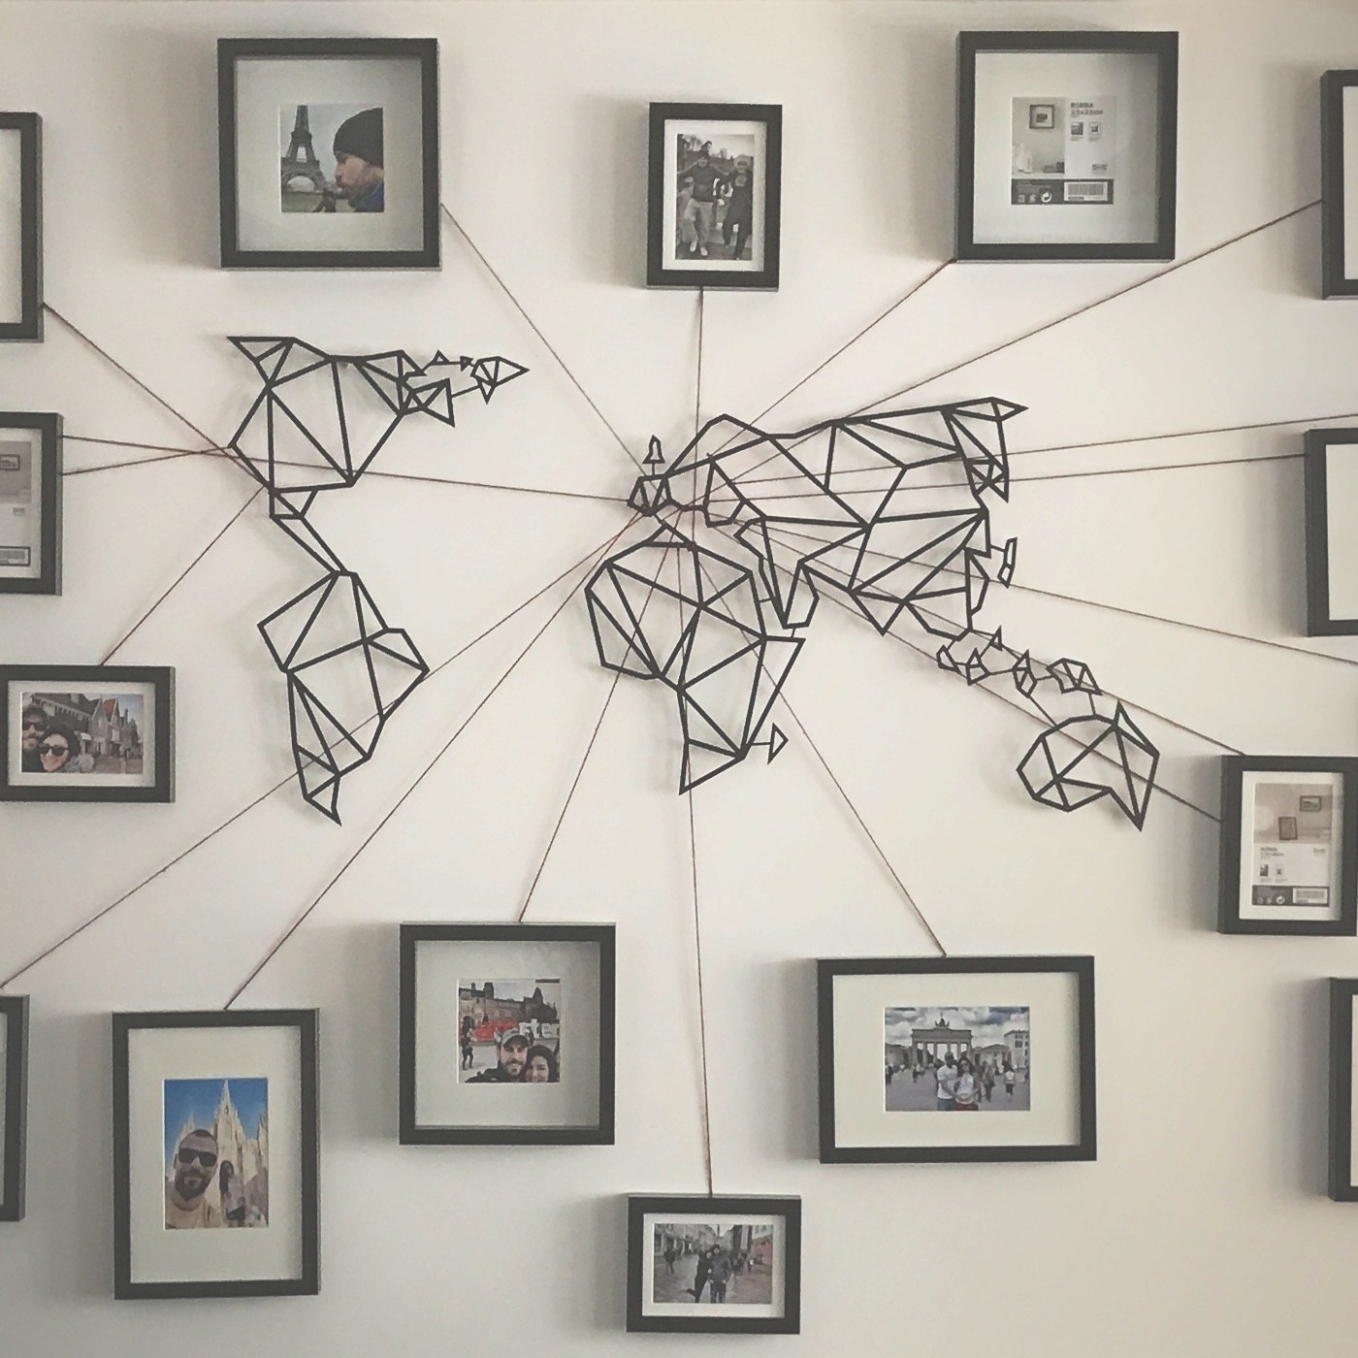 Wall Art World Map For Best And Newest Photo Gallery Of Wall Art Map World Viewing 11 45 Photos For (View 10 of 15)